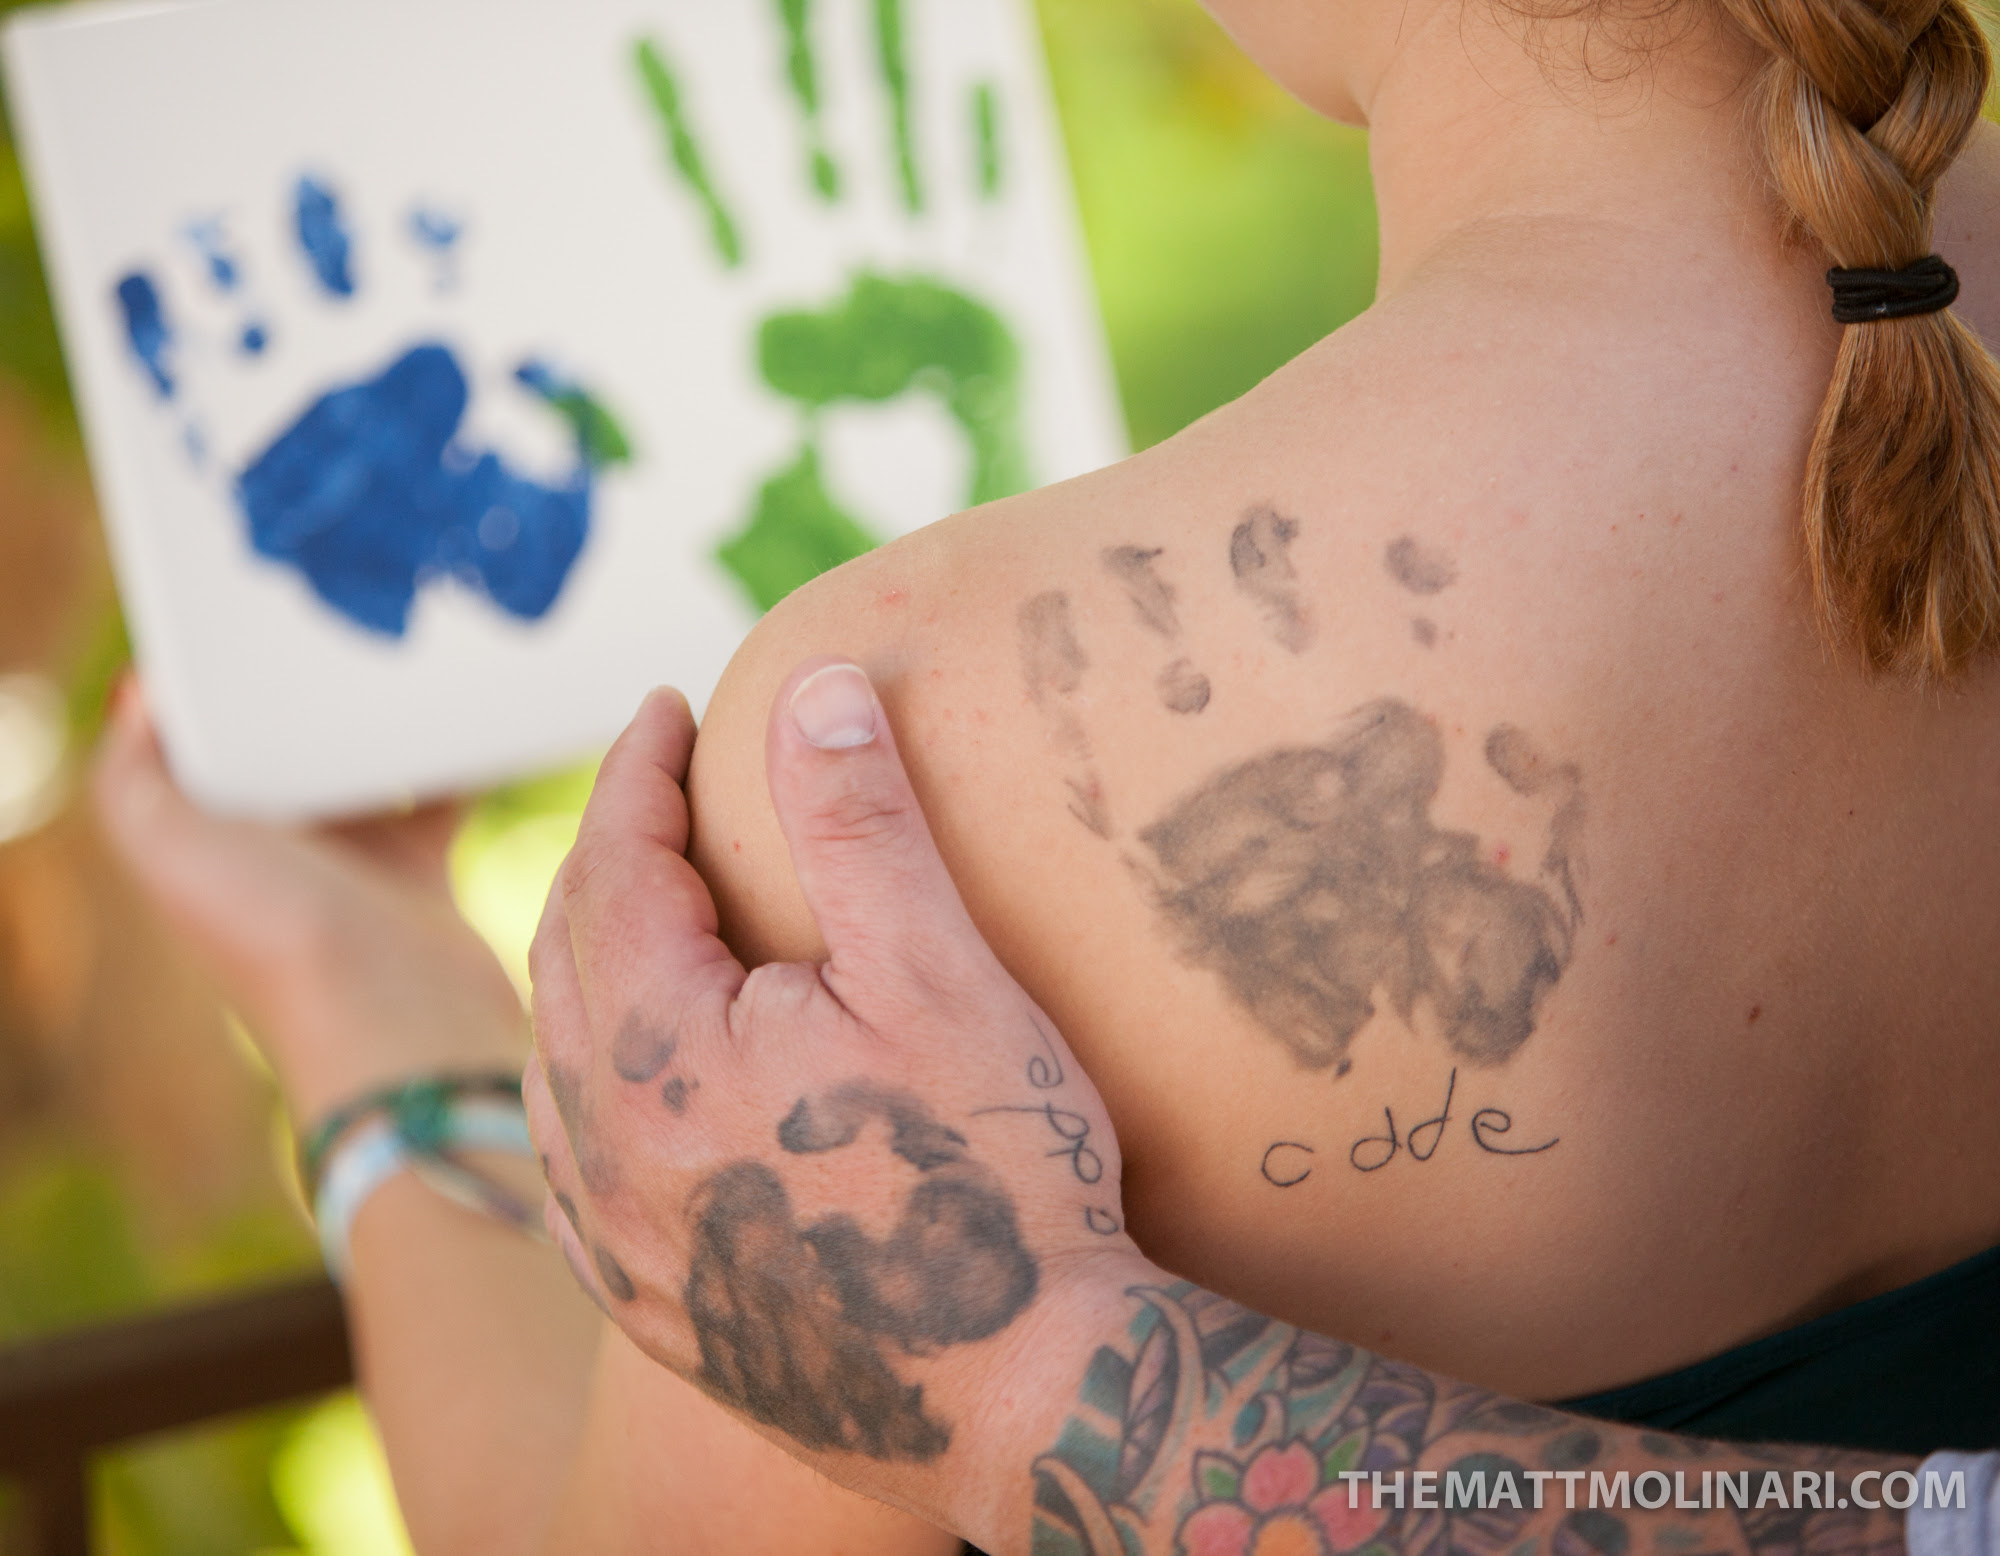 Griefink How Memorial Tattoos Ease Pain Of Loss